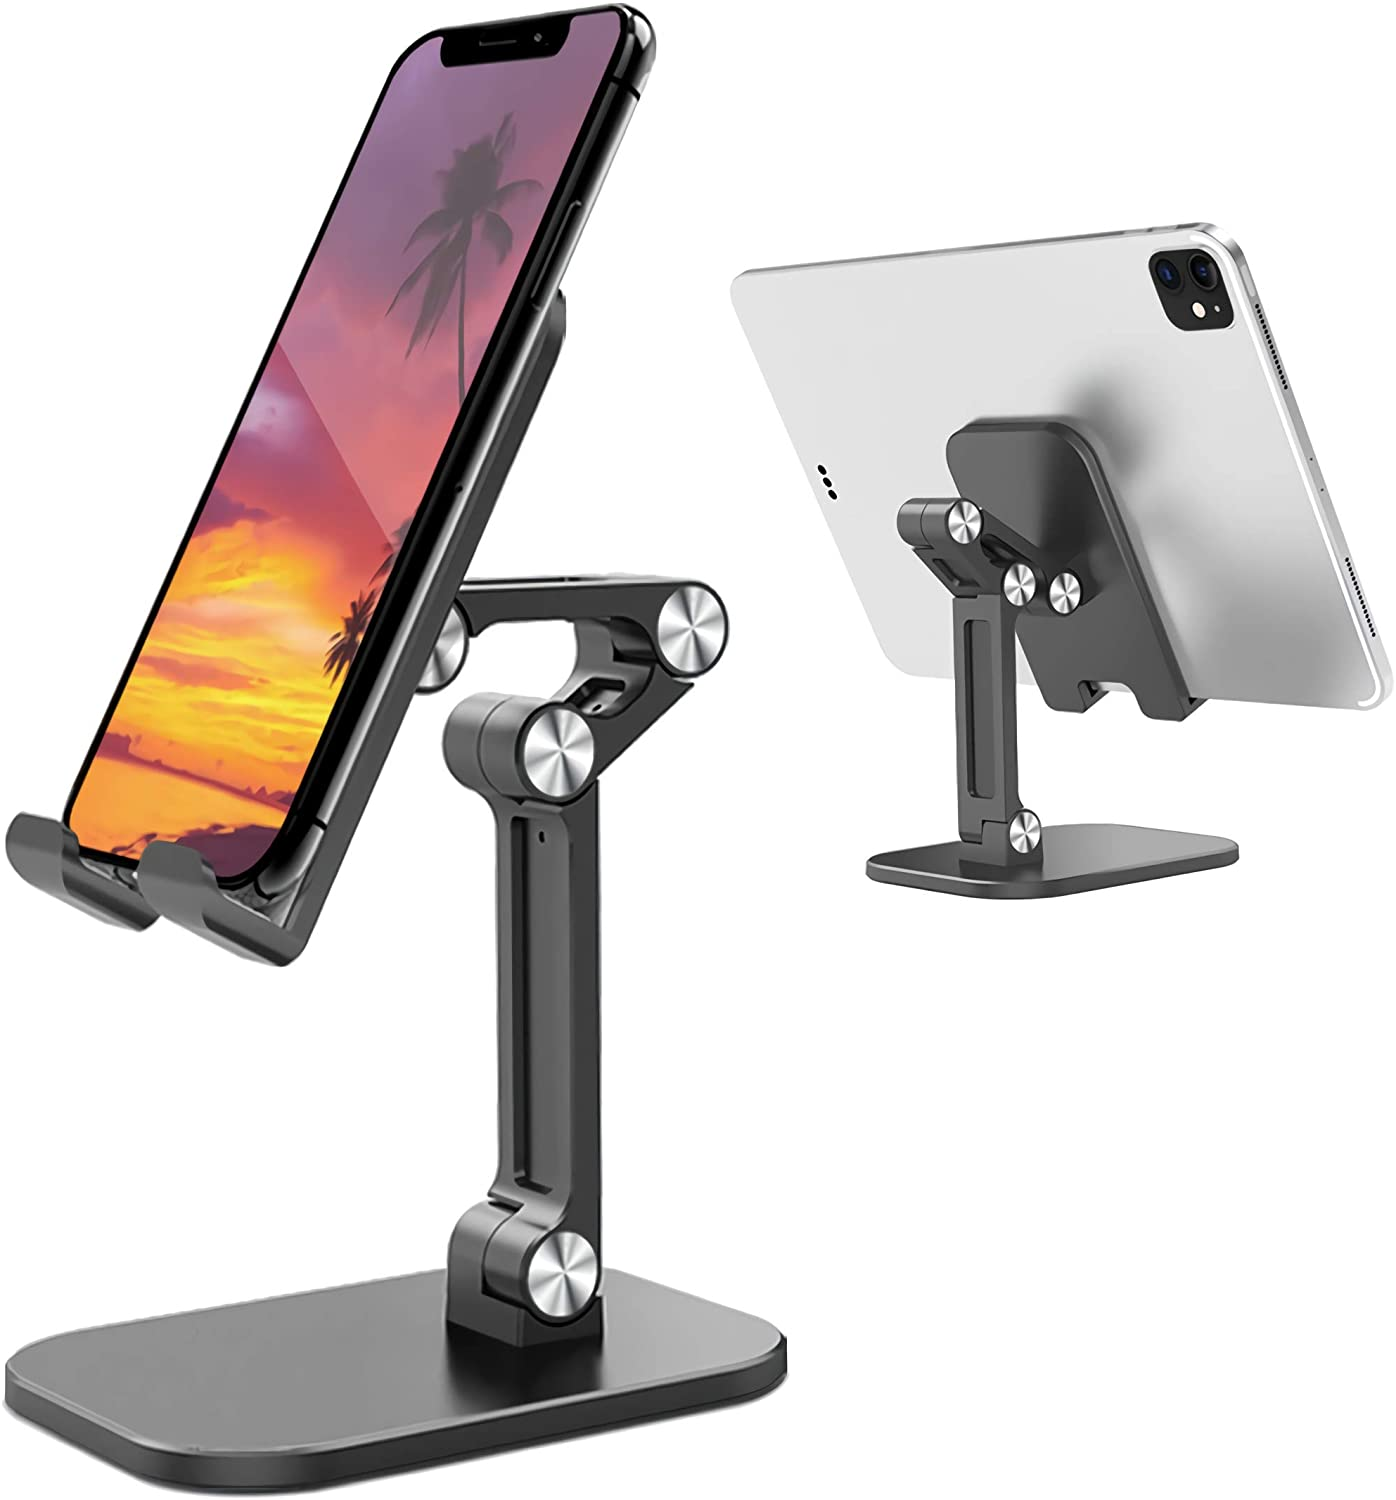 Trace Kasa Adjustable Cell Phone Stand, Angle Height Adjustable Foldable, Phone Holder for Desk w/Anti-Slip Silicon Pad,Legs, Compatible All Mobile Phone iPad iPhone Tablet Nintendo Switch Kindle